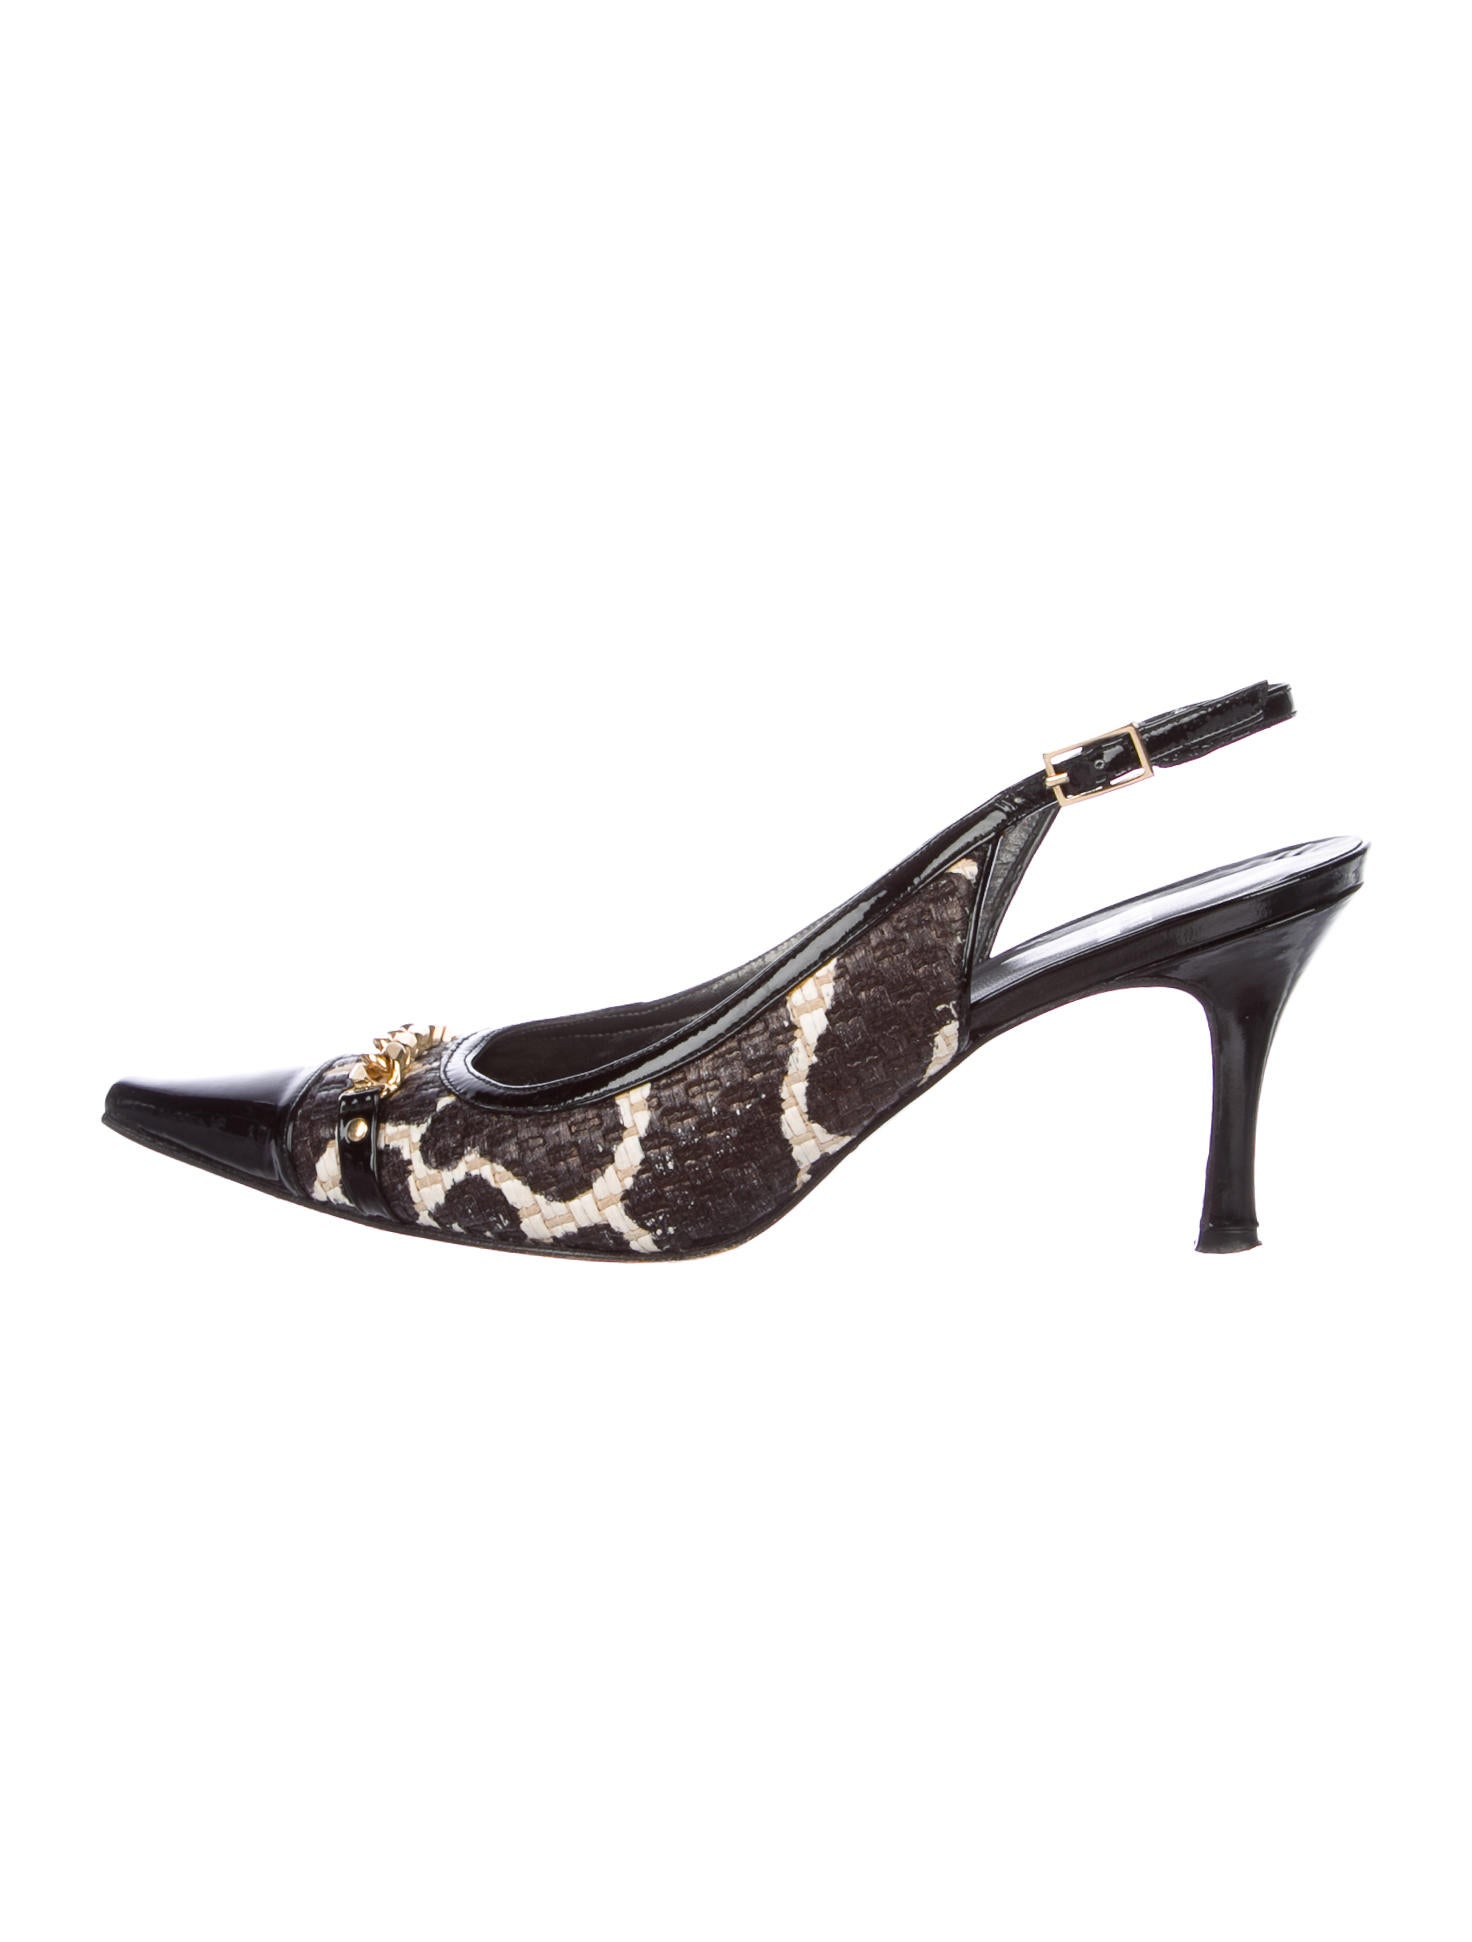 Stuart Weitzman Chain-Link Slingback Pumps free shipping get to buy clearance manchester great sale online sale outlet cheap authentic cheap price wholesale price thweQ9v